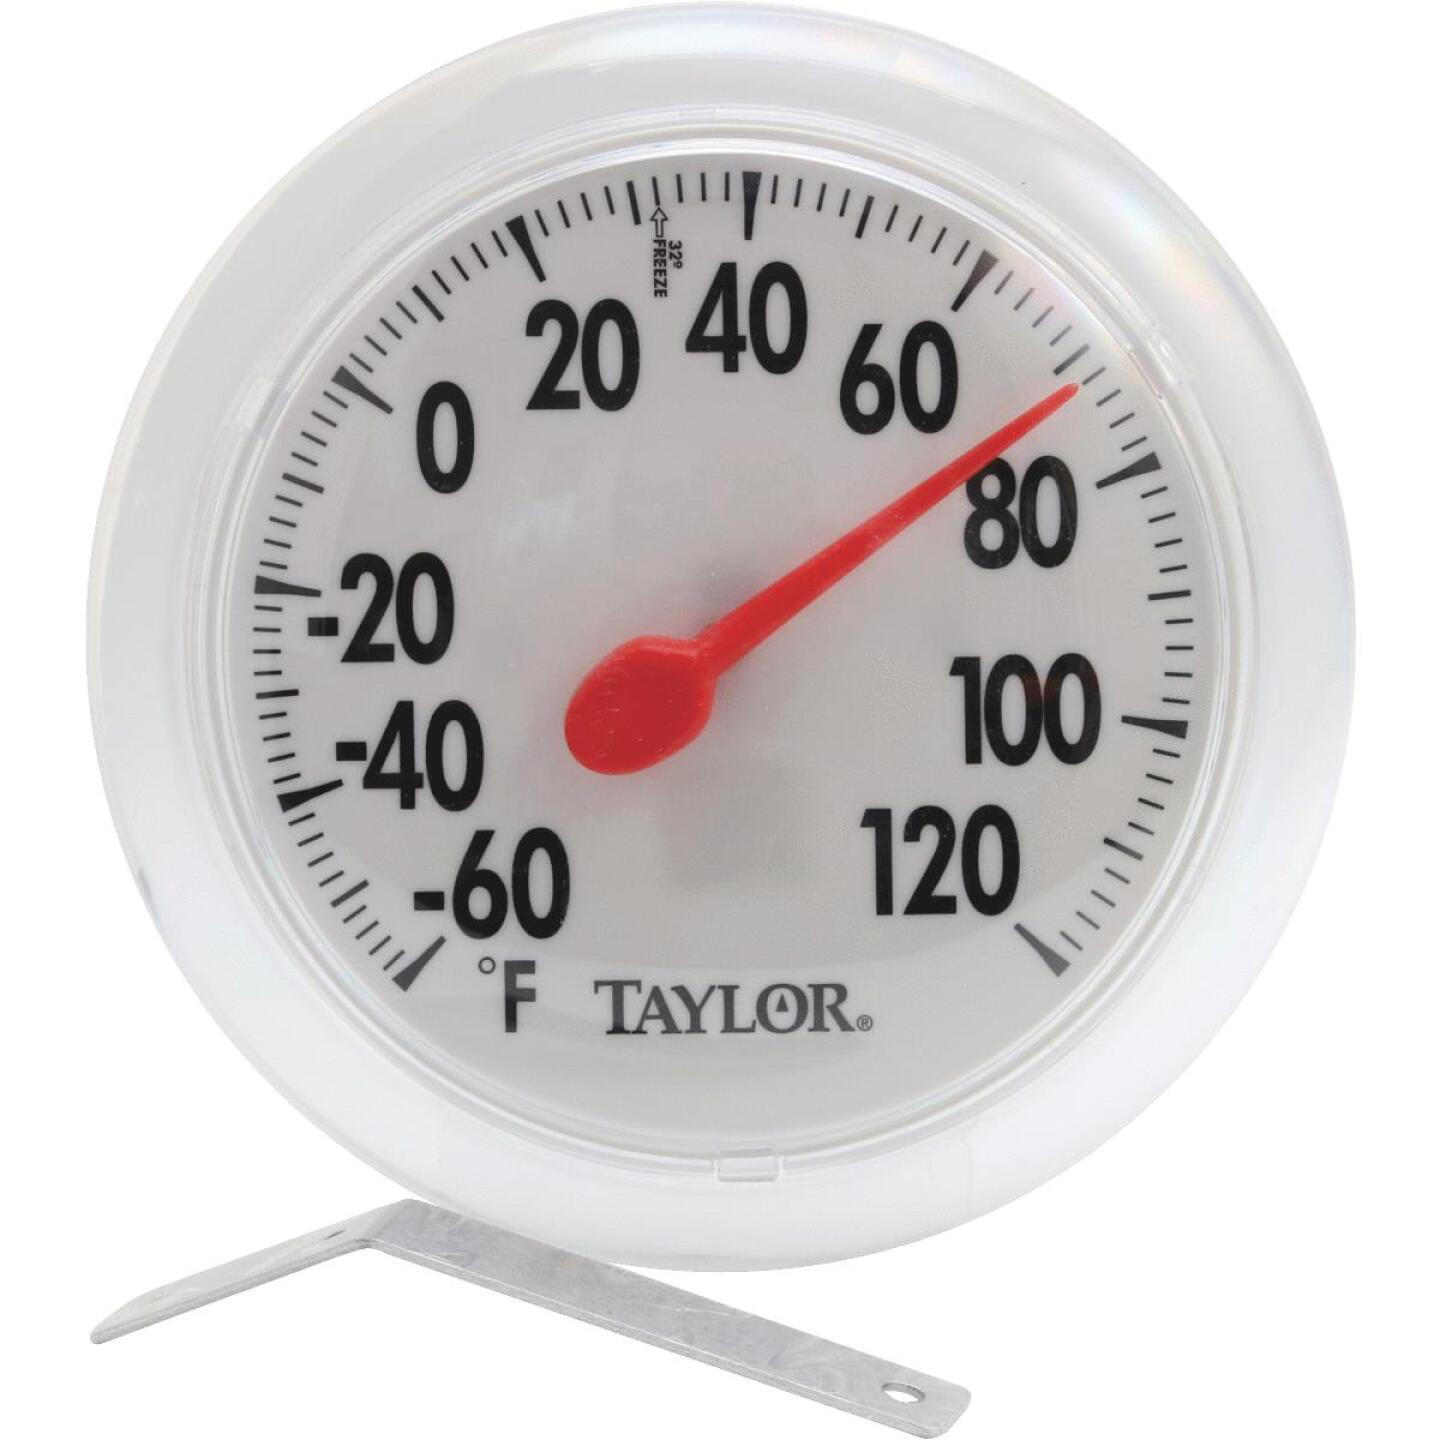 """Taylor 6"""" Fahrenheit -60 To 120 Outdoor Wall Thermometer Image 1"""